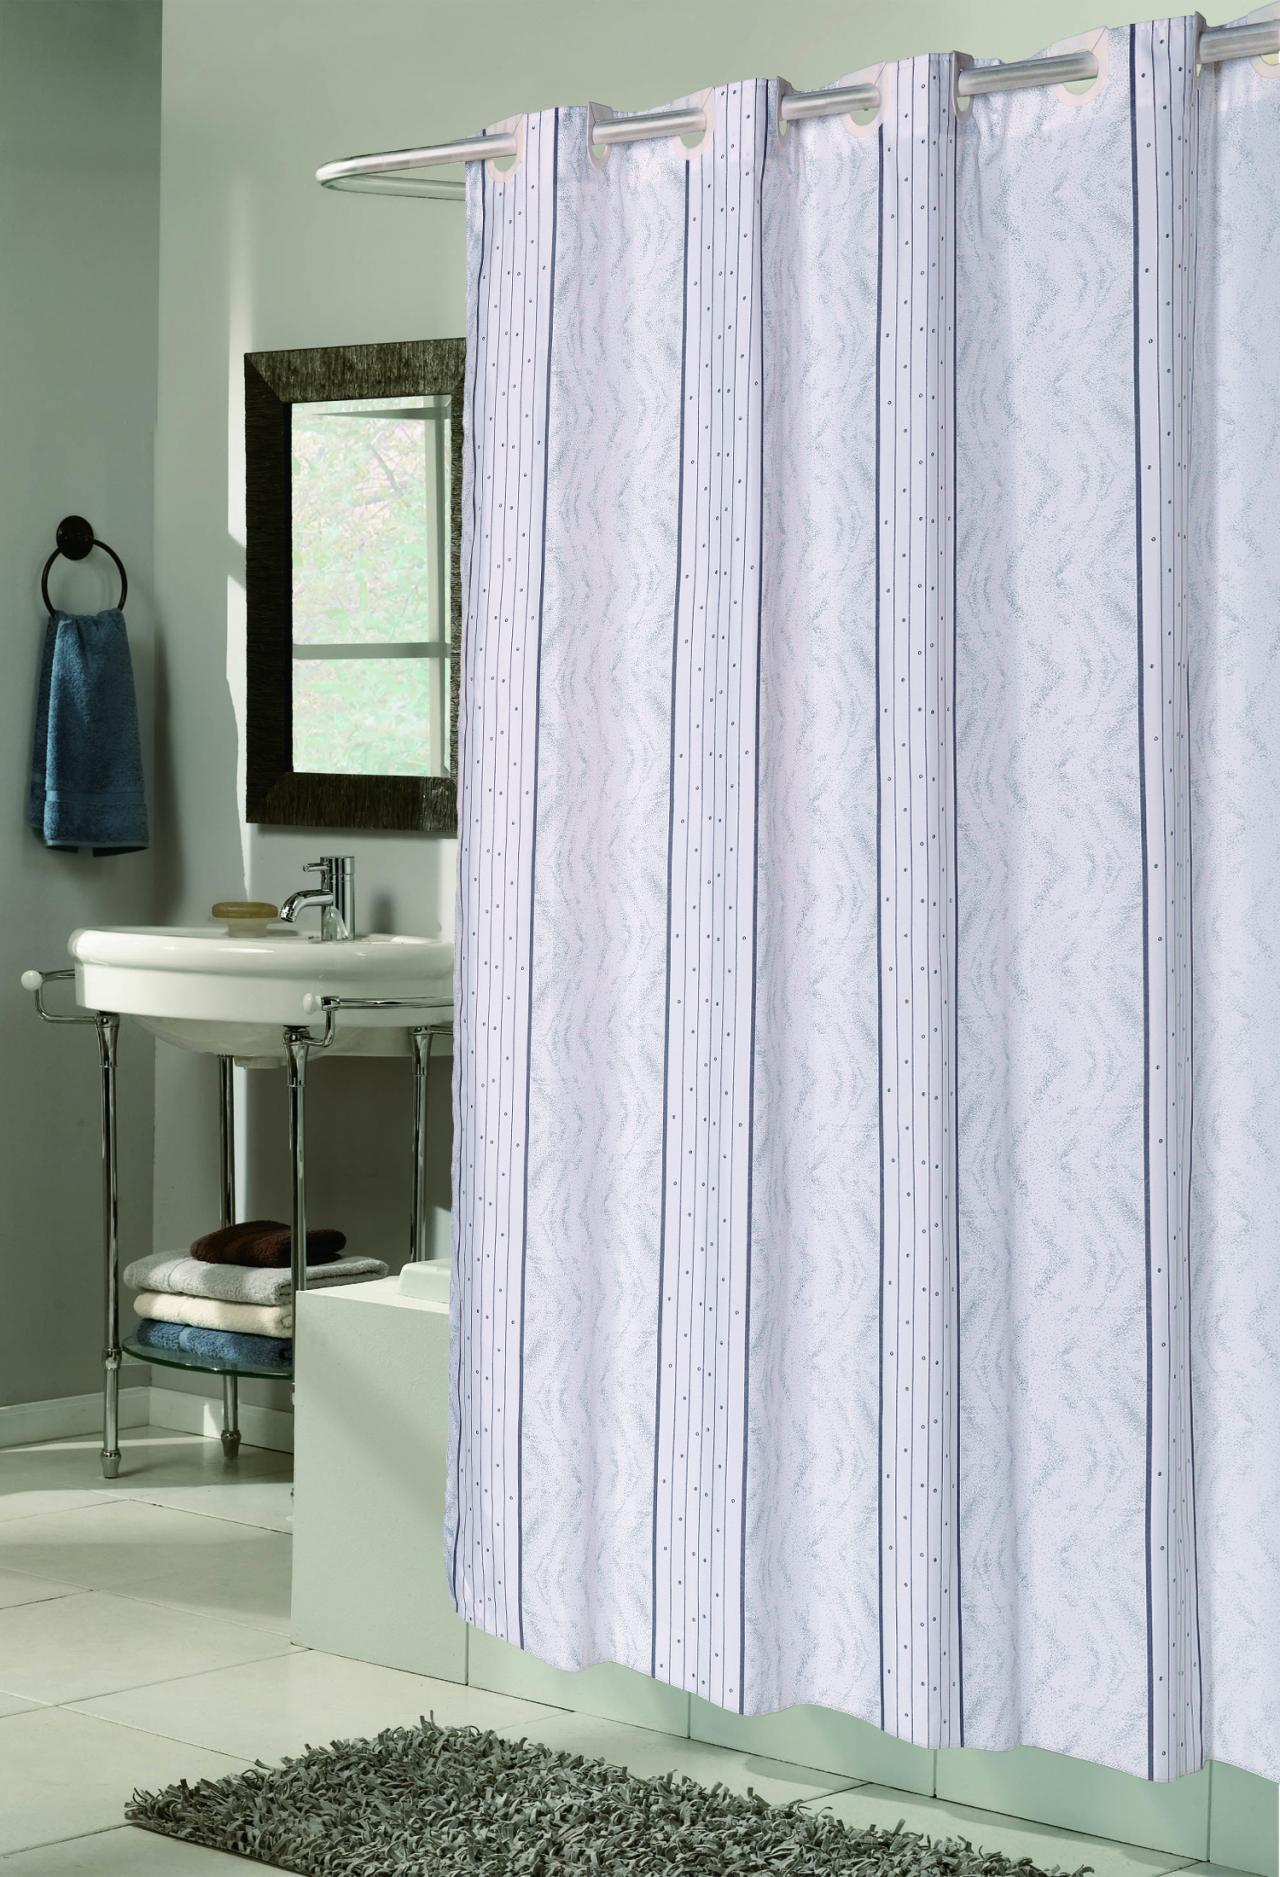 Fabric Shower Curtain No Liner Needed